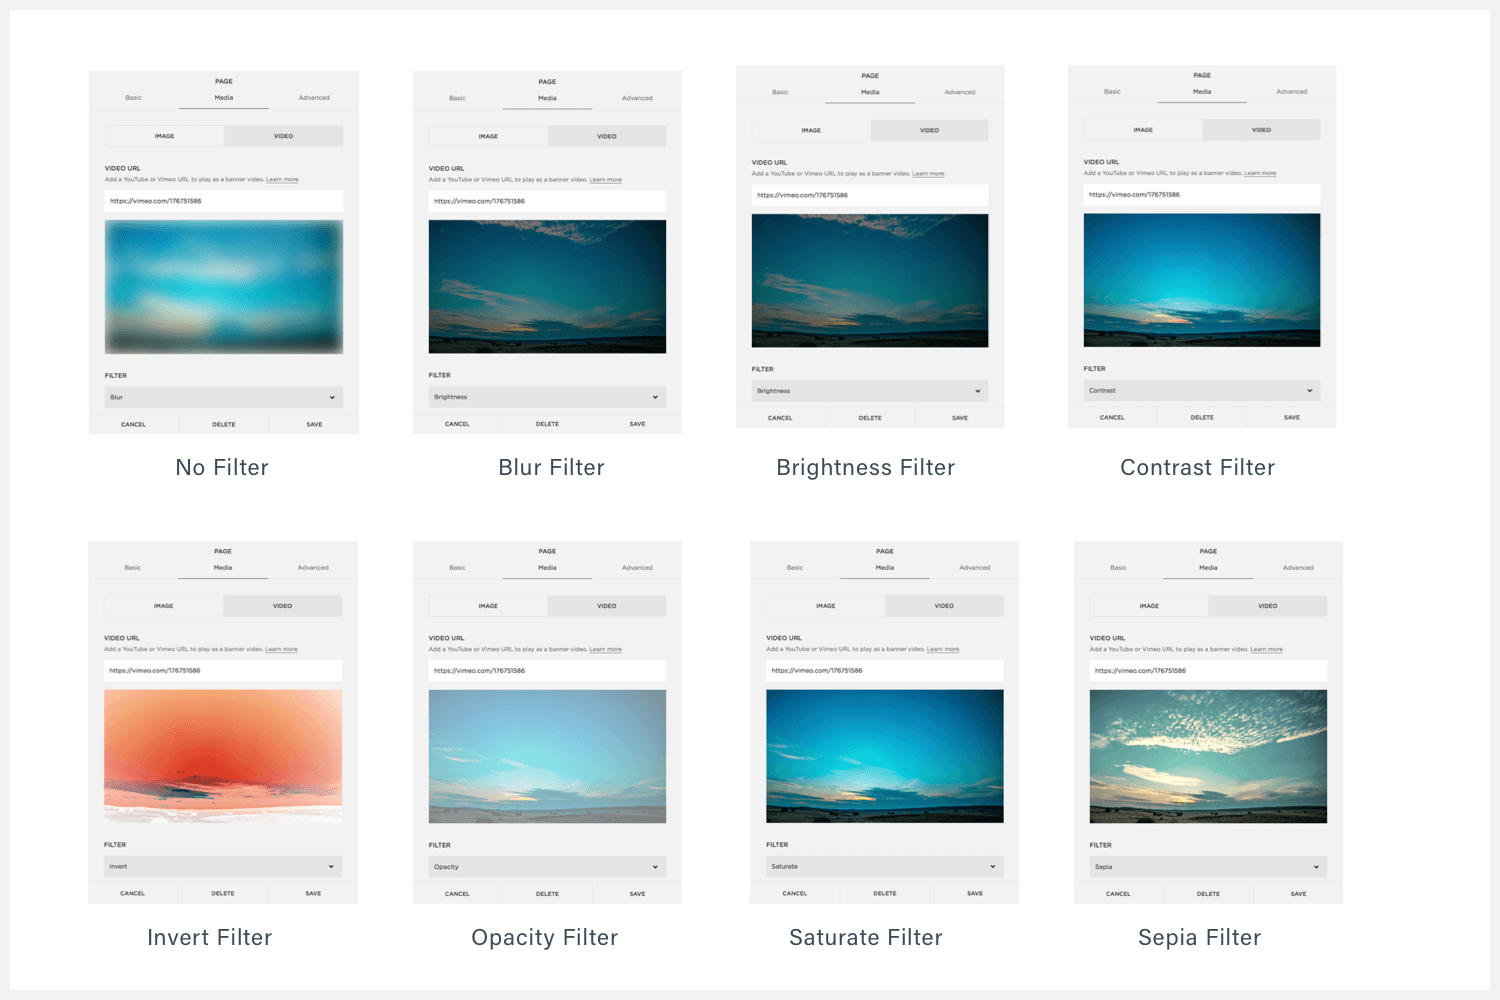 The 8 filters that are available for background video on Squarespace